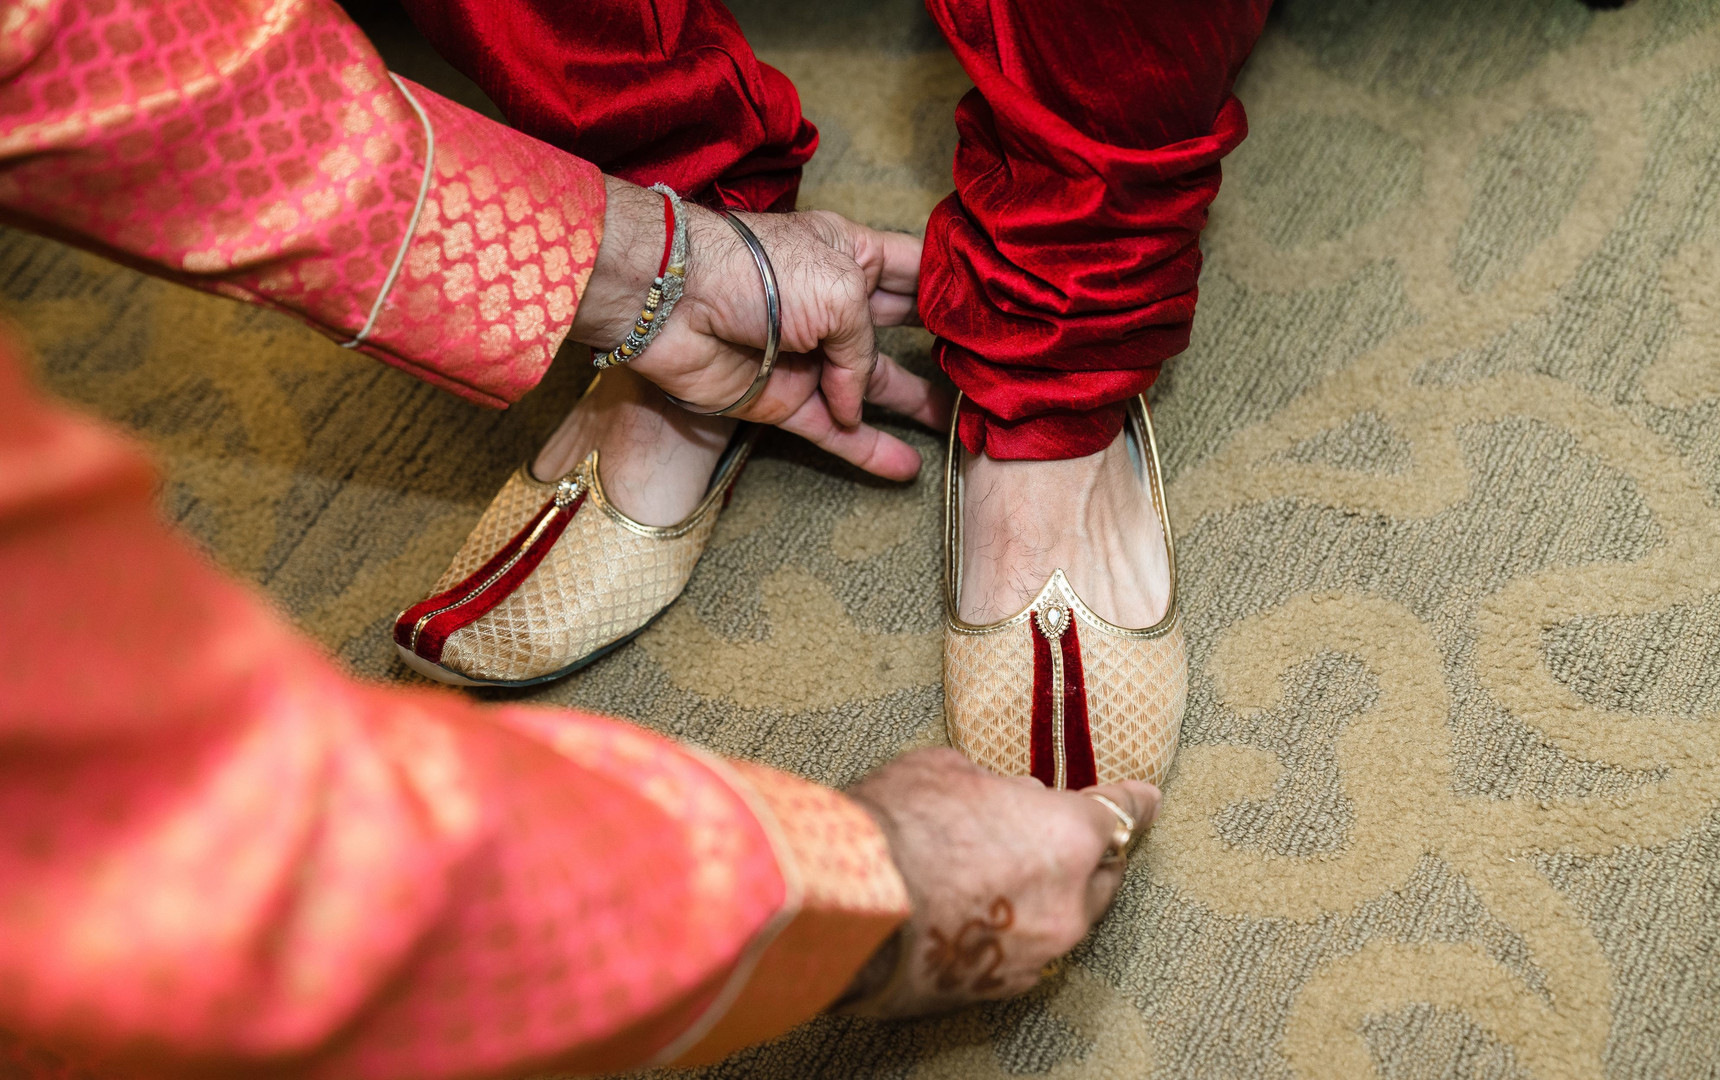 Indian groom being assisted to put his e